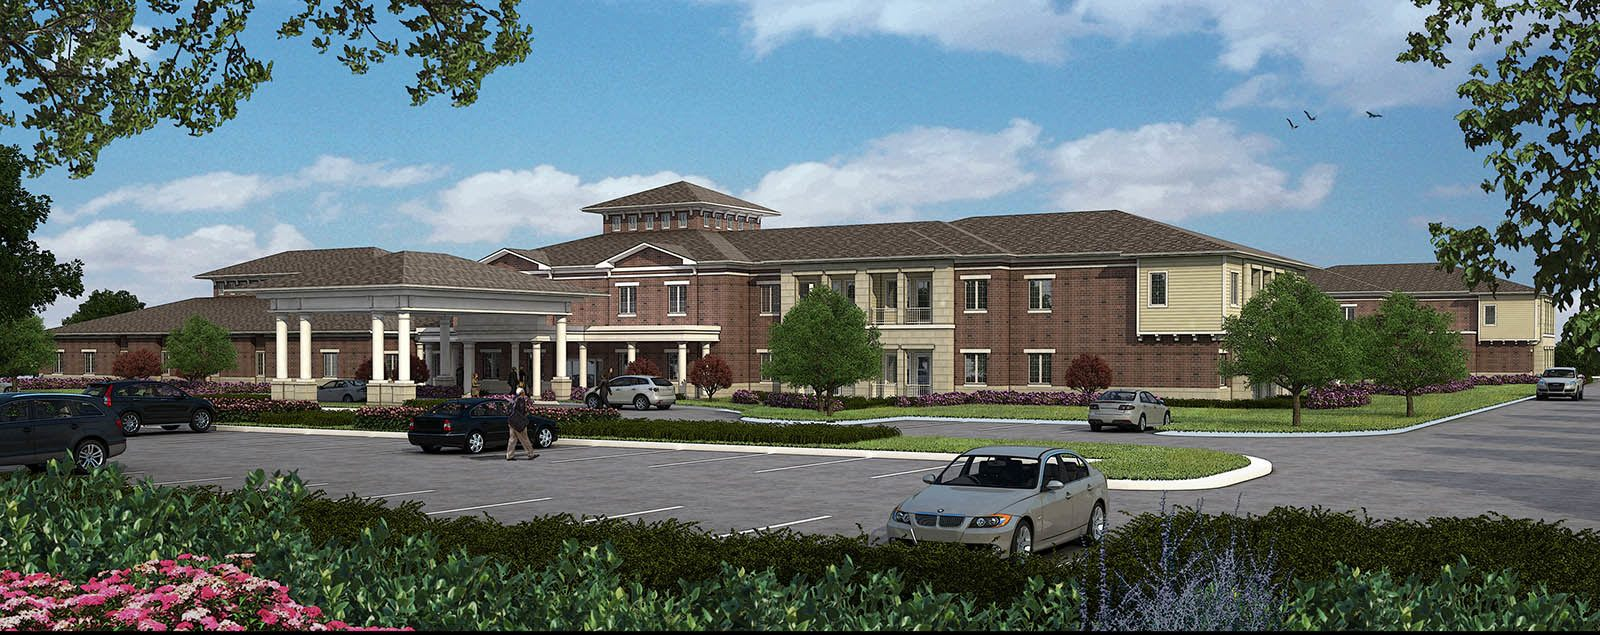 Floor plans at senior living in Naperville